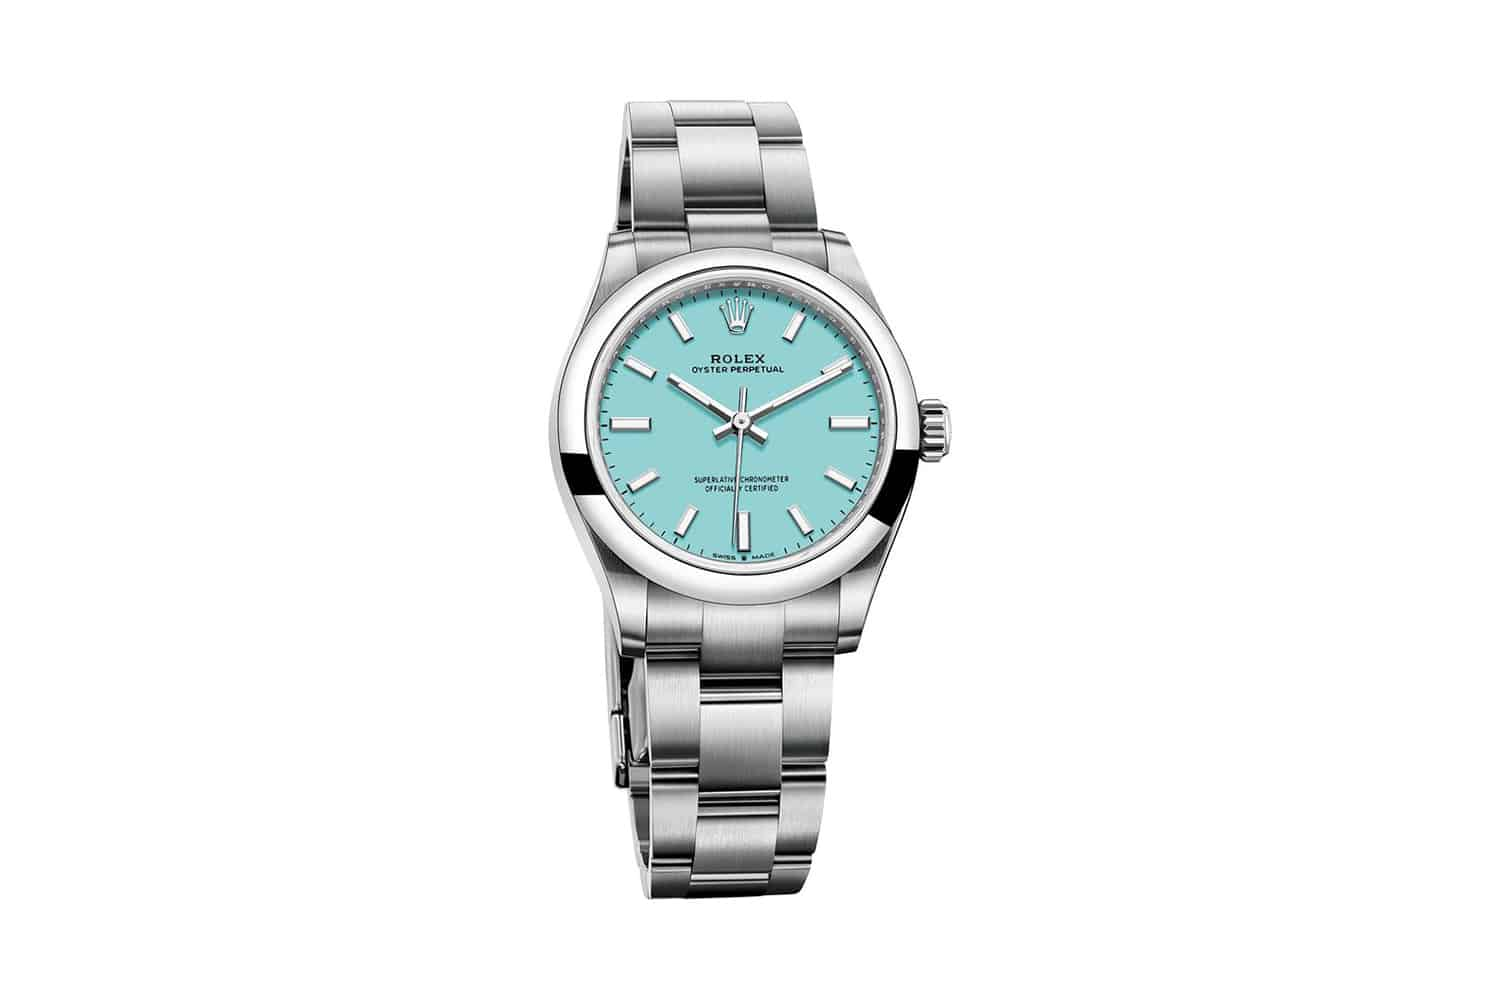 Rolex-Oyster-Perpetual-2000